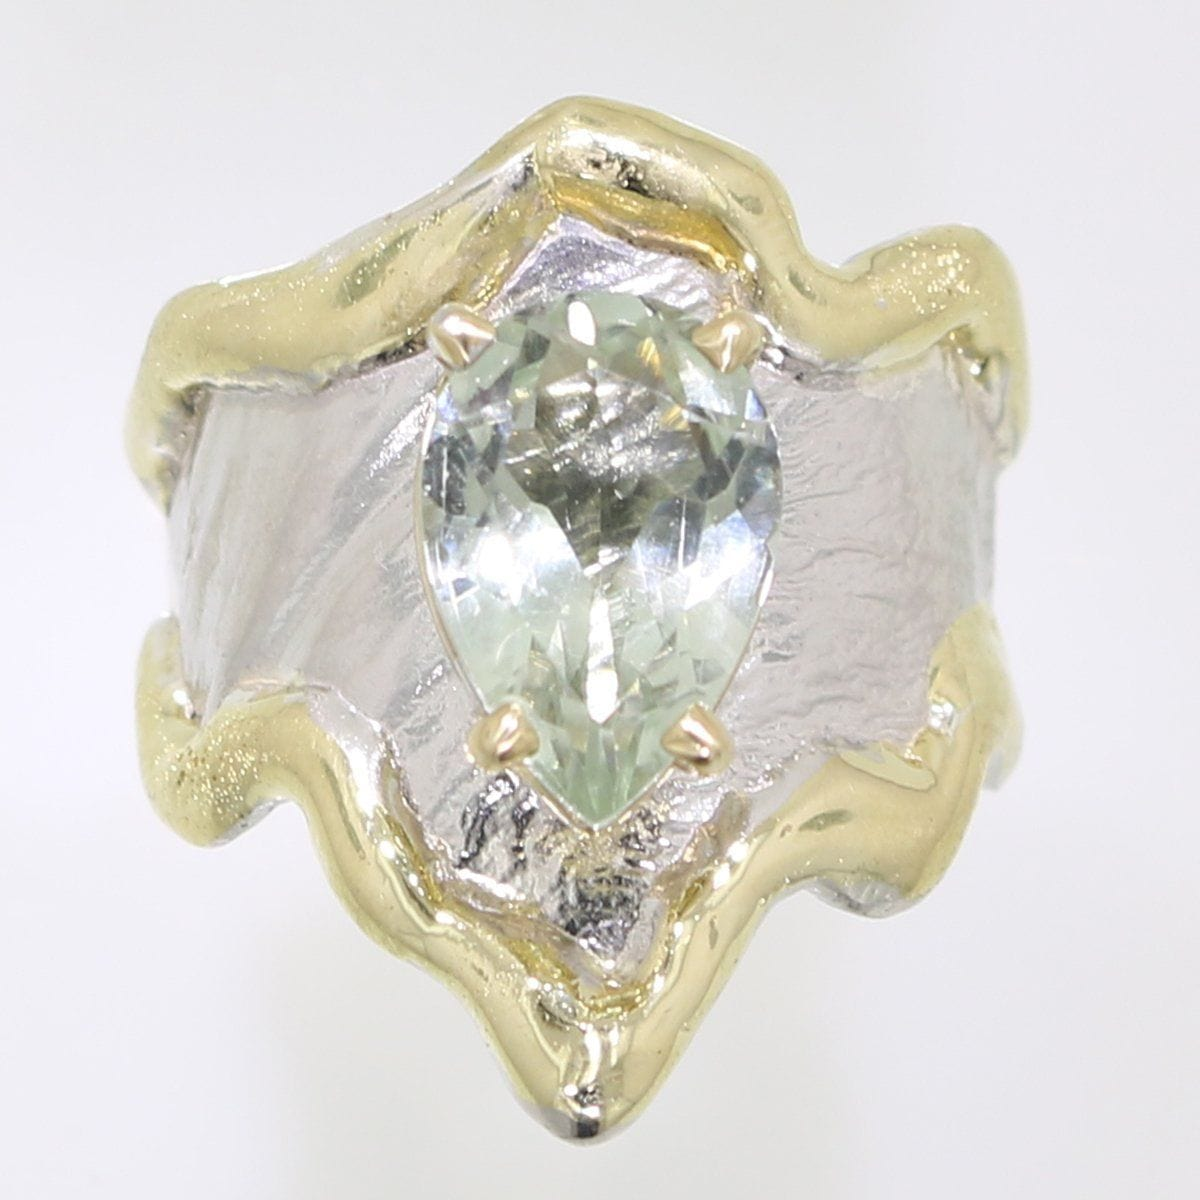 14K Gold & Crystalline Silver Prasiolite Ring - 31990-Fusion Designs-Renee Taylor Gallery